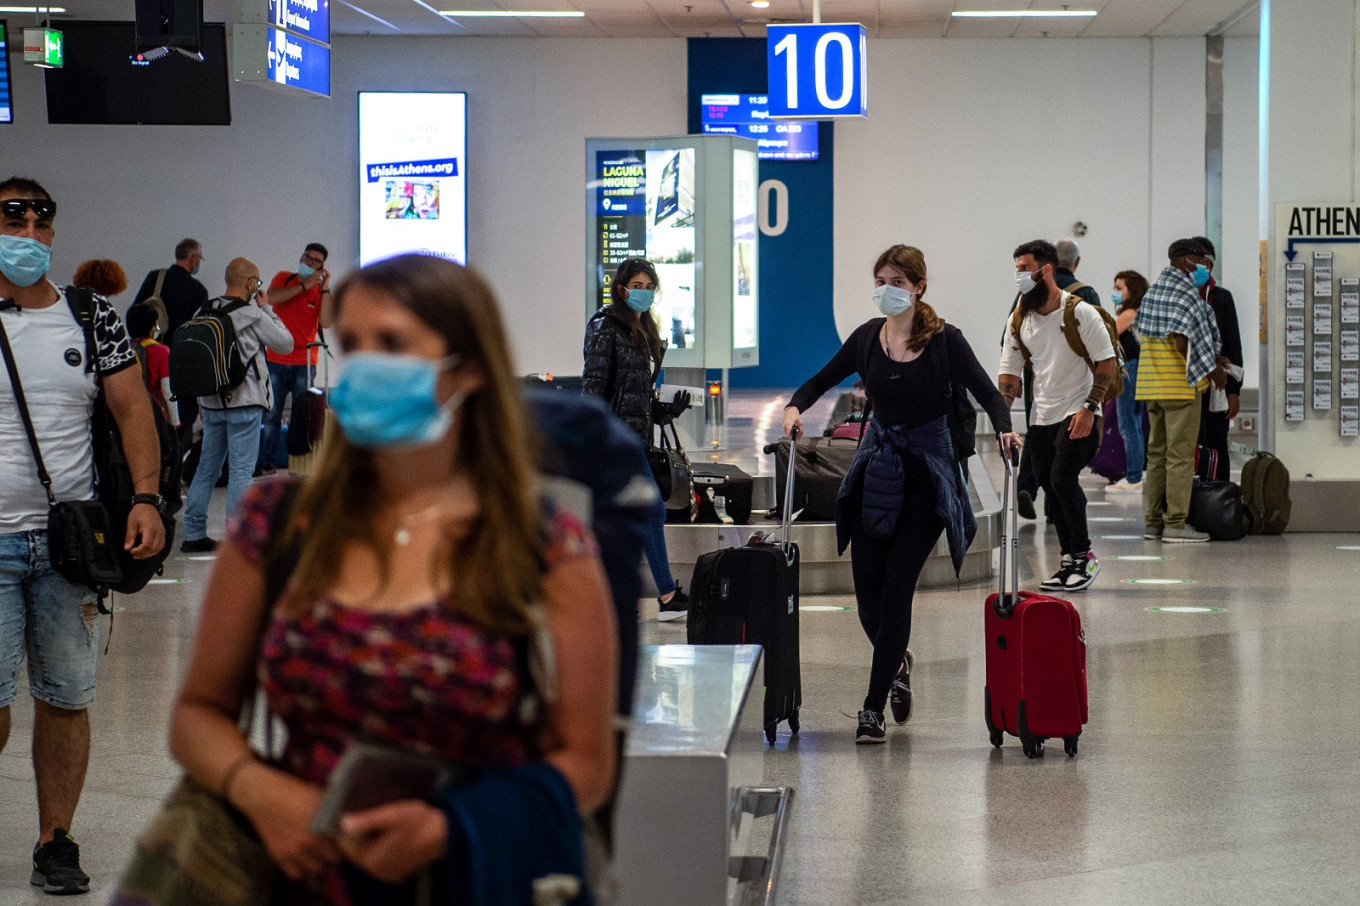 Americans show strong willingness to travel despite COVID-19 pandemic